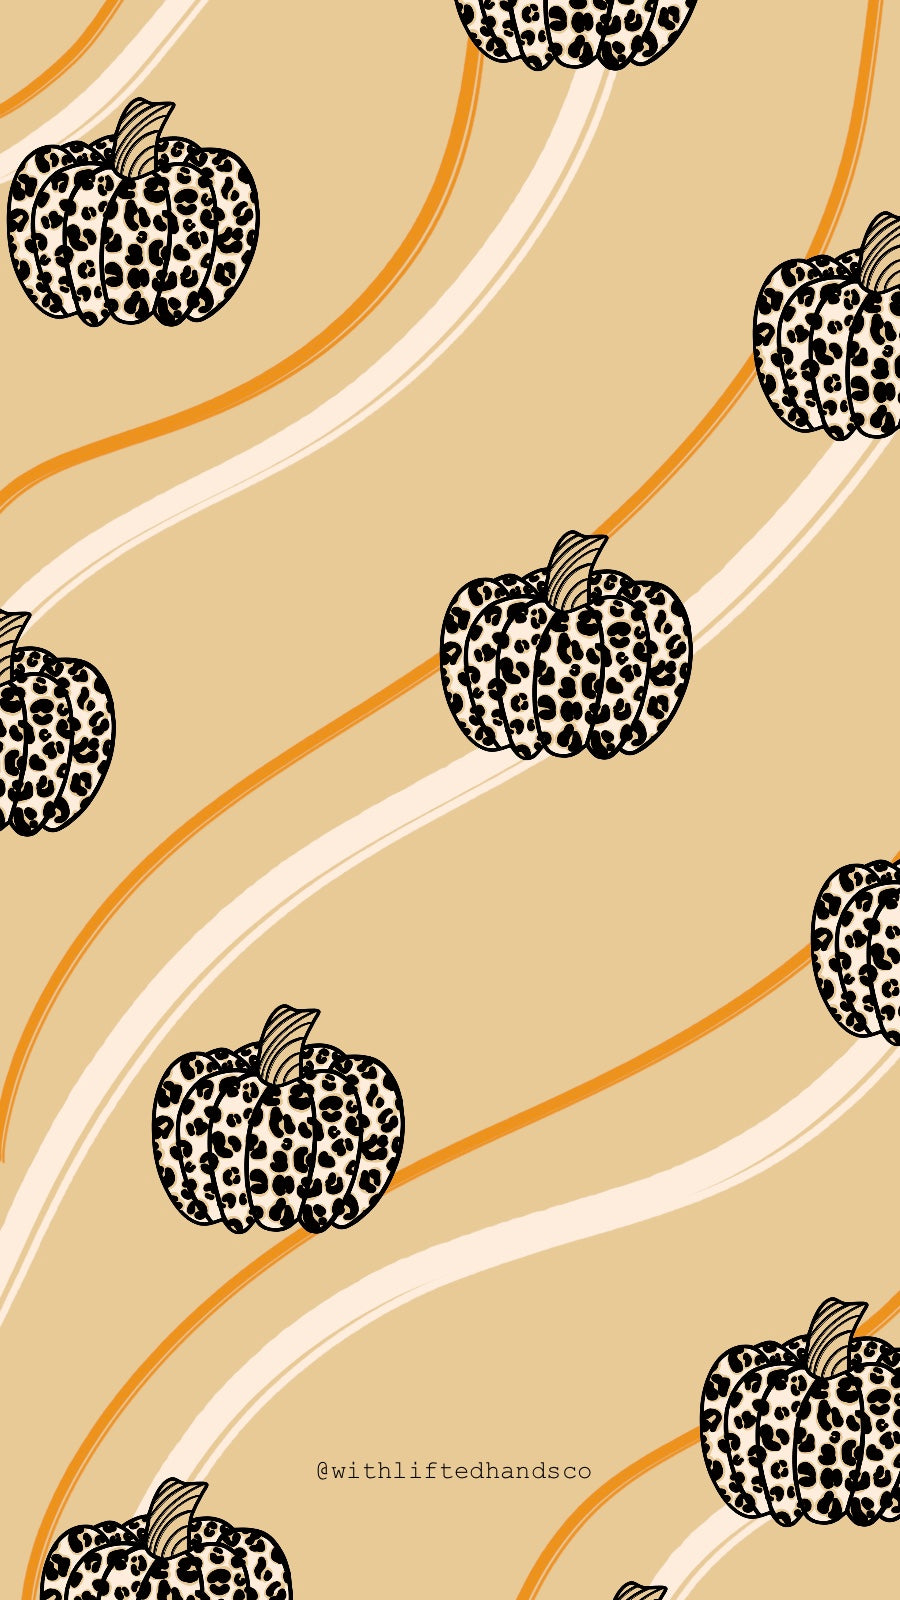 Leopard pumpkin phone wallpapers by with lifted hands co